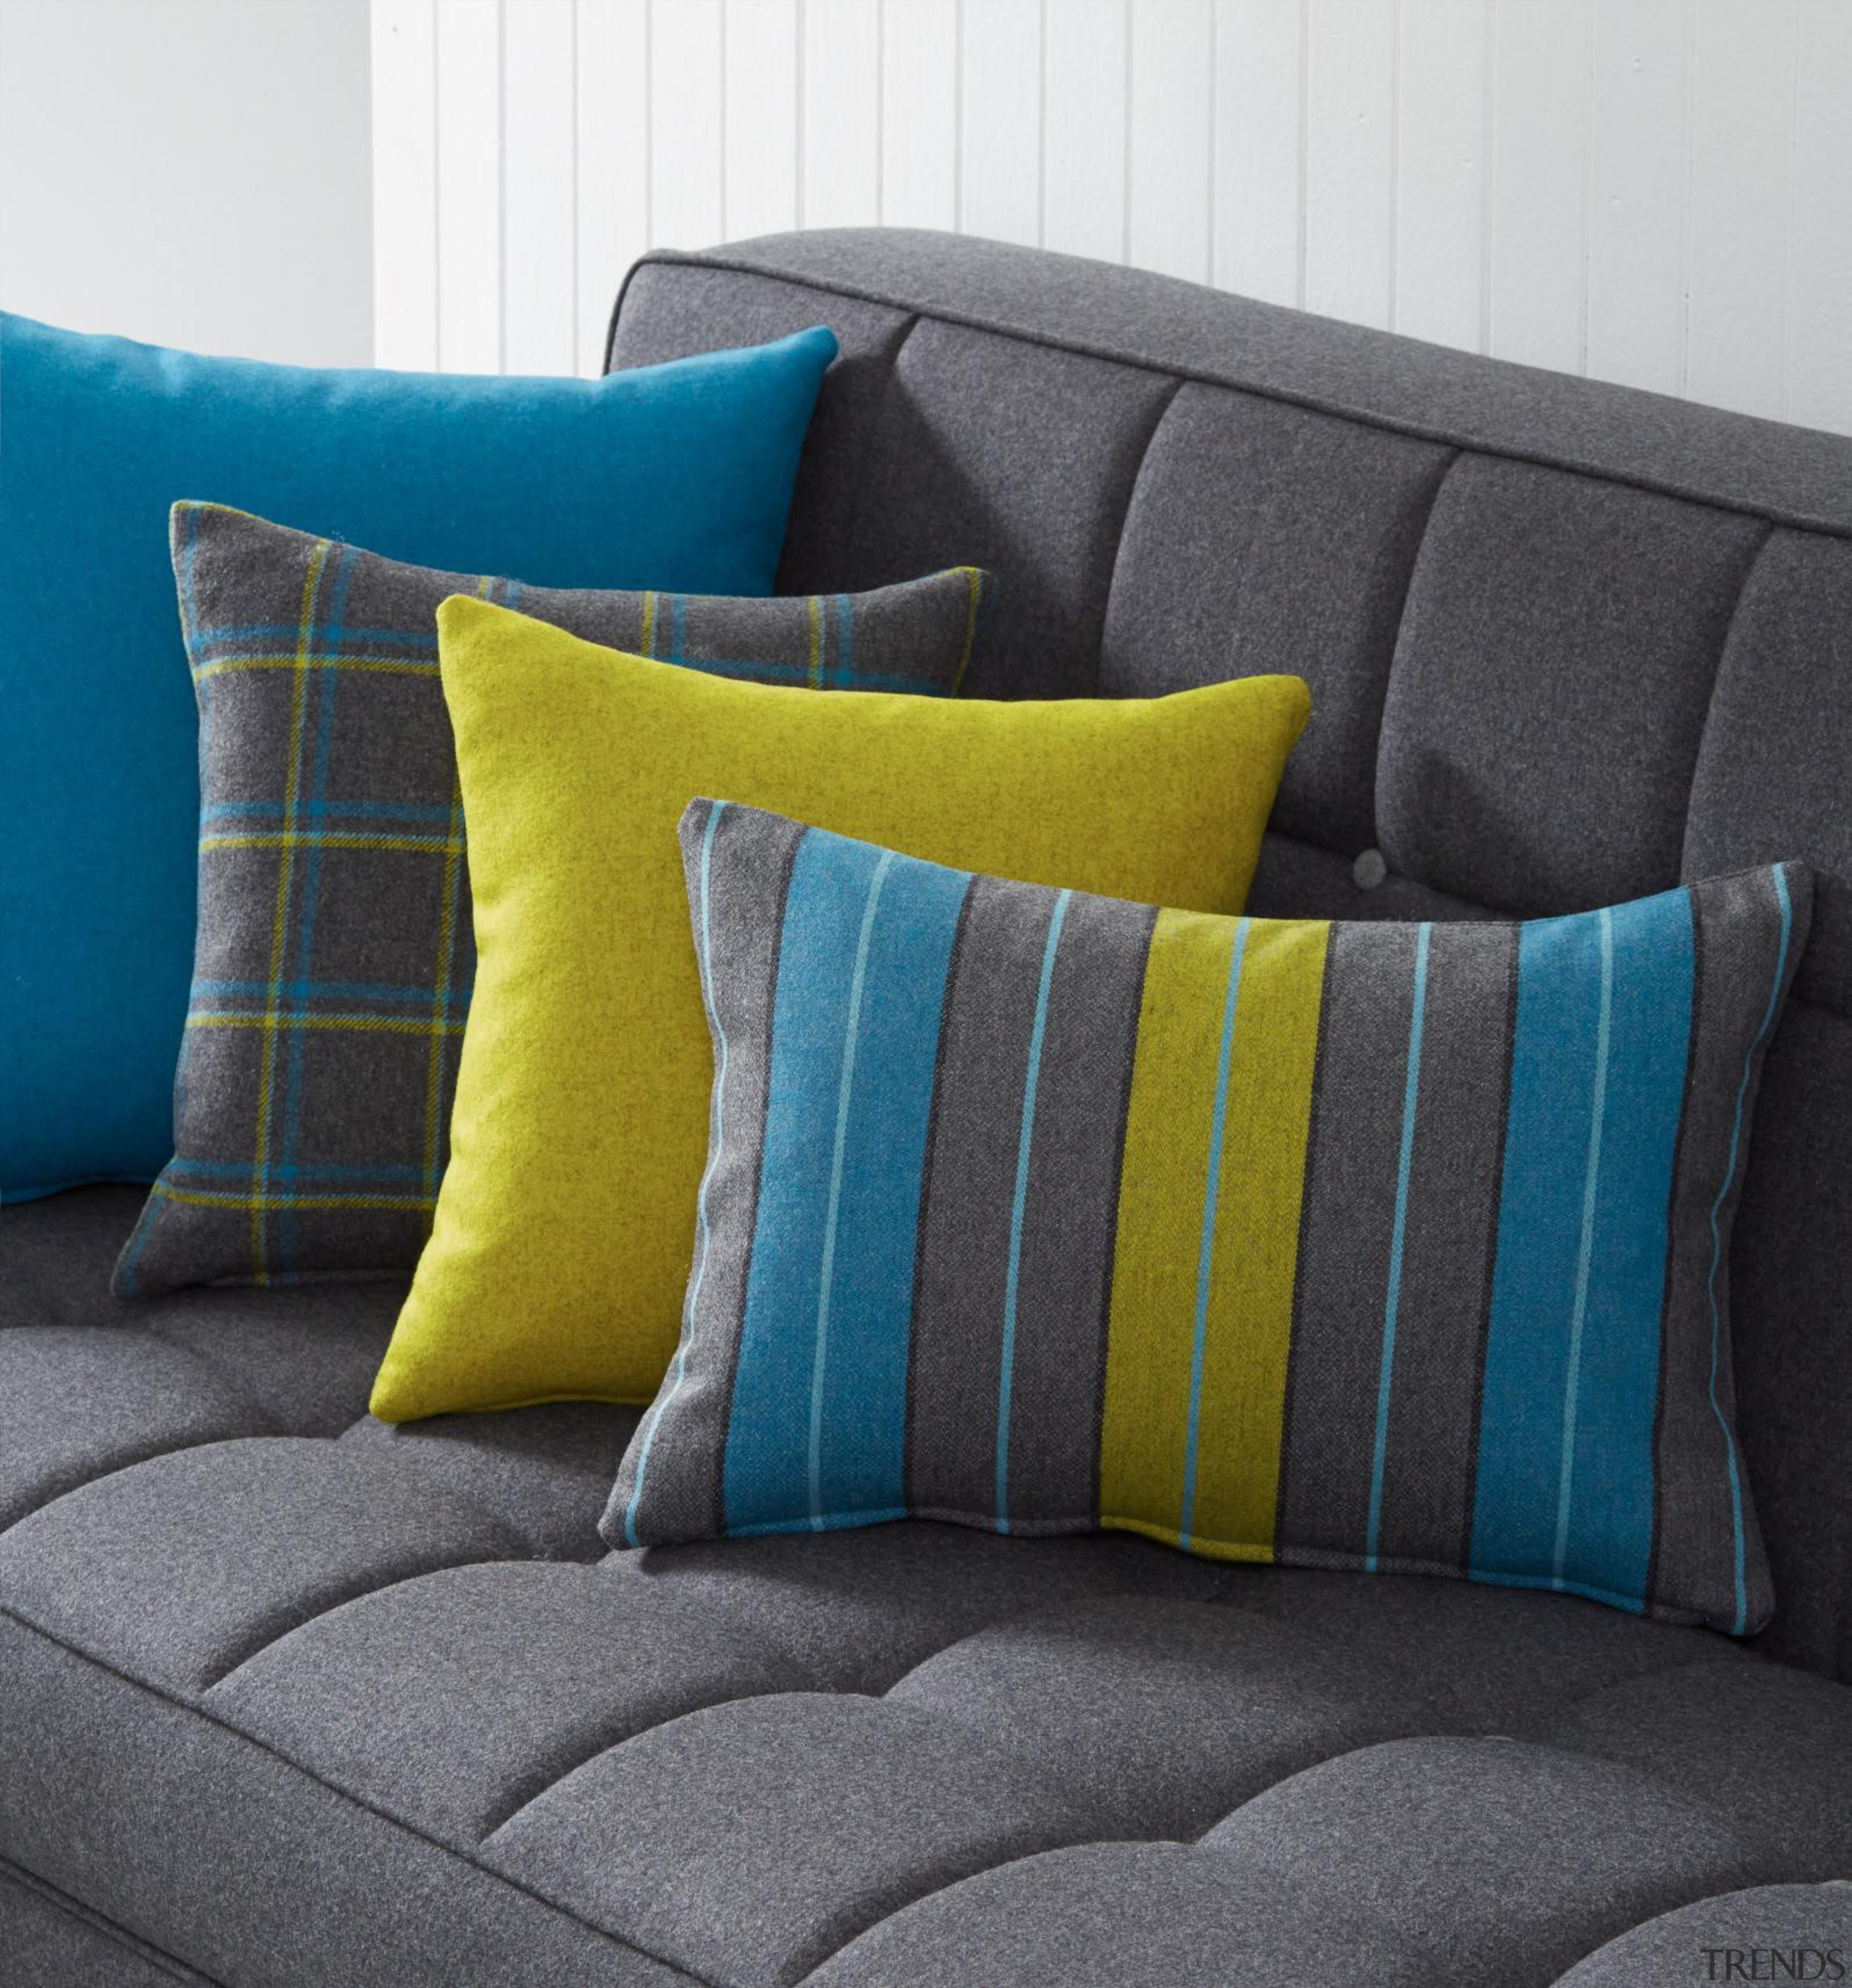 Richmond is an exciting addition to ourgrowing European couch, cushion, furniture, pillow, textile, throw pillow, black